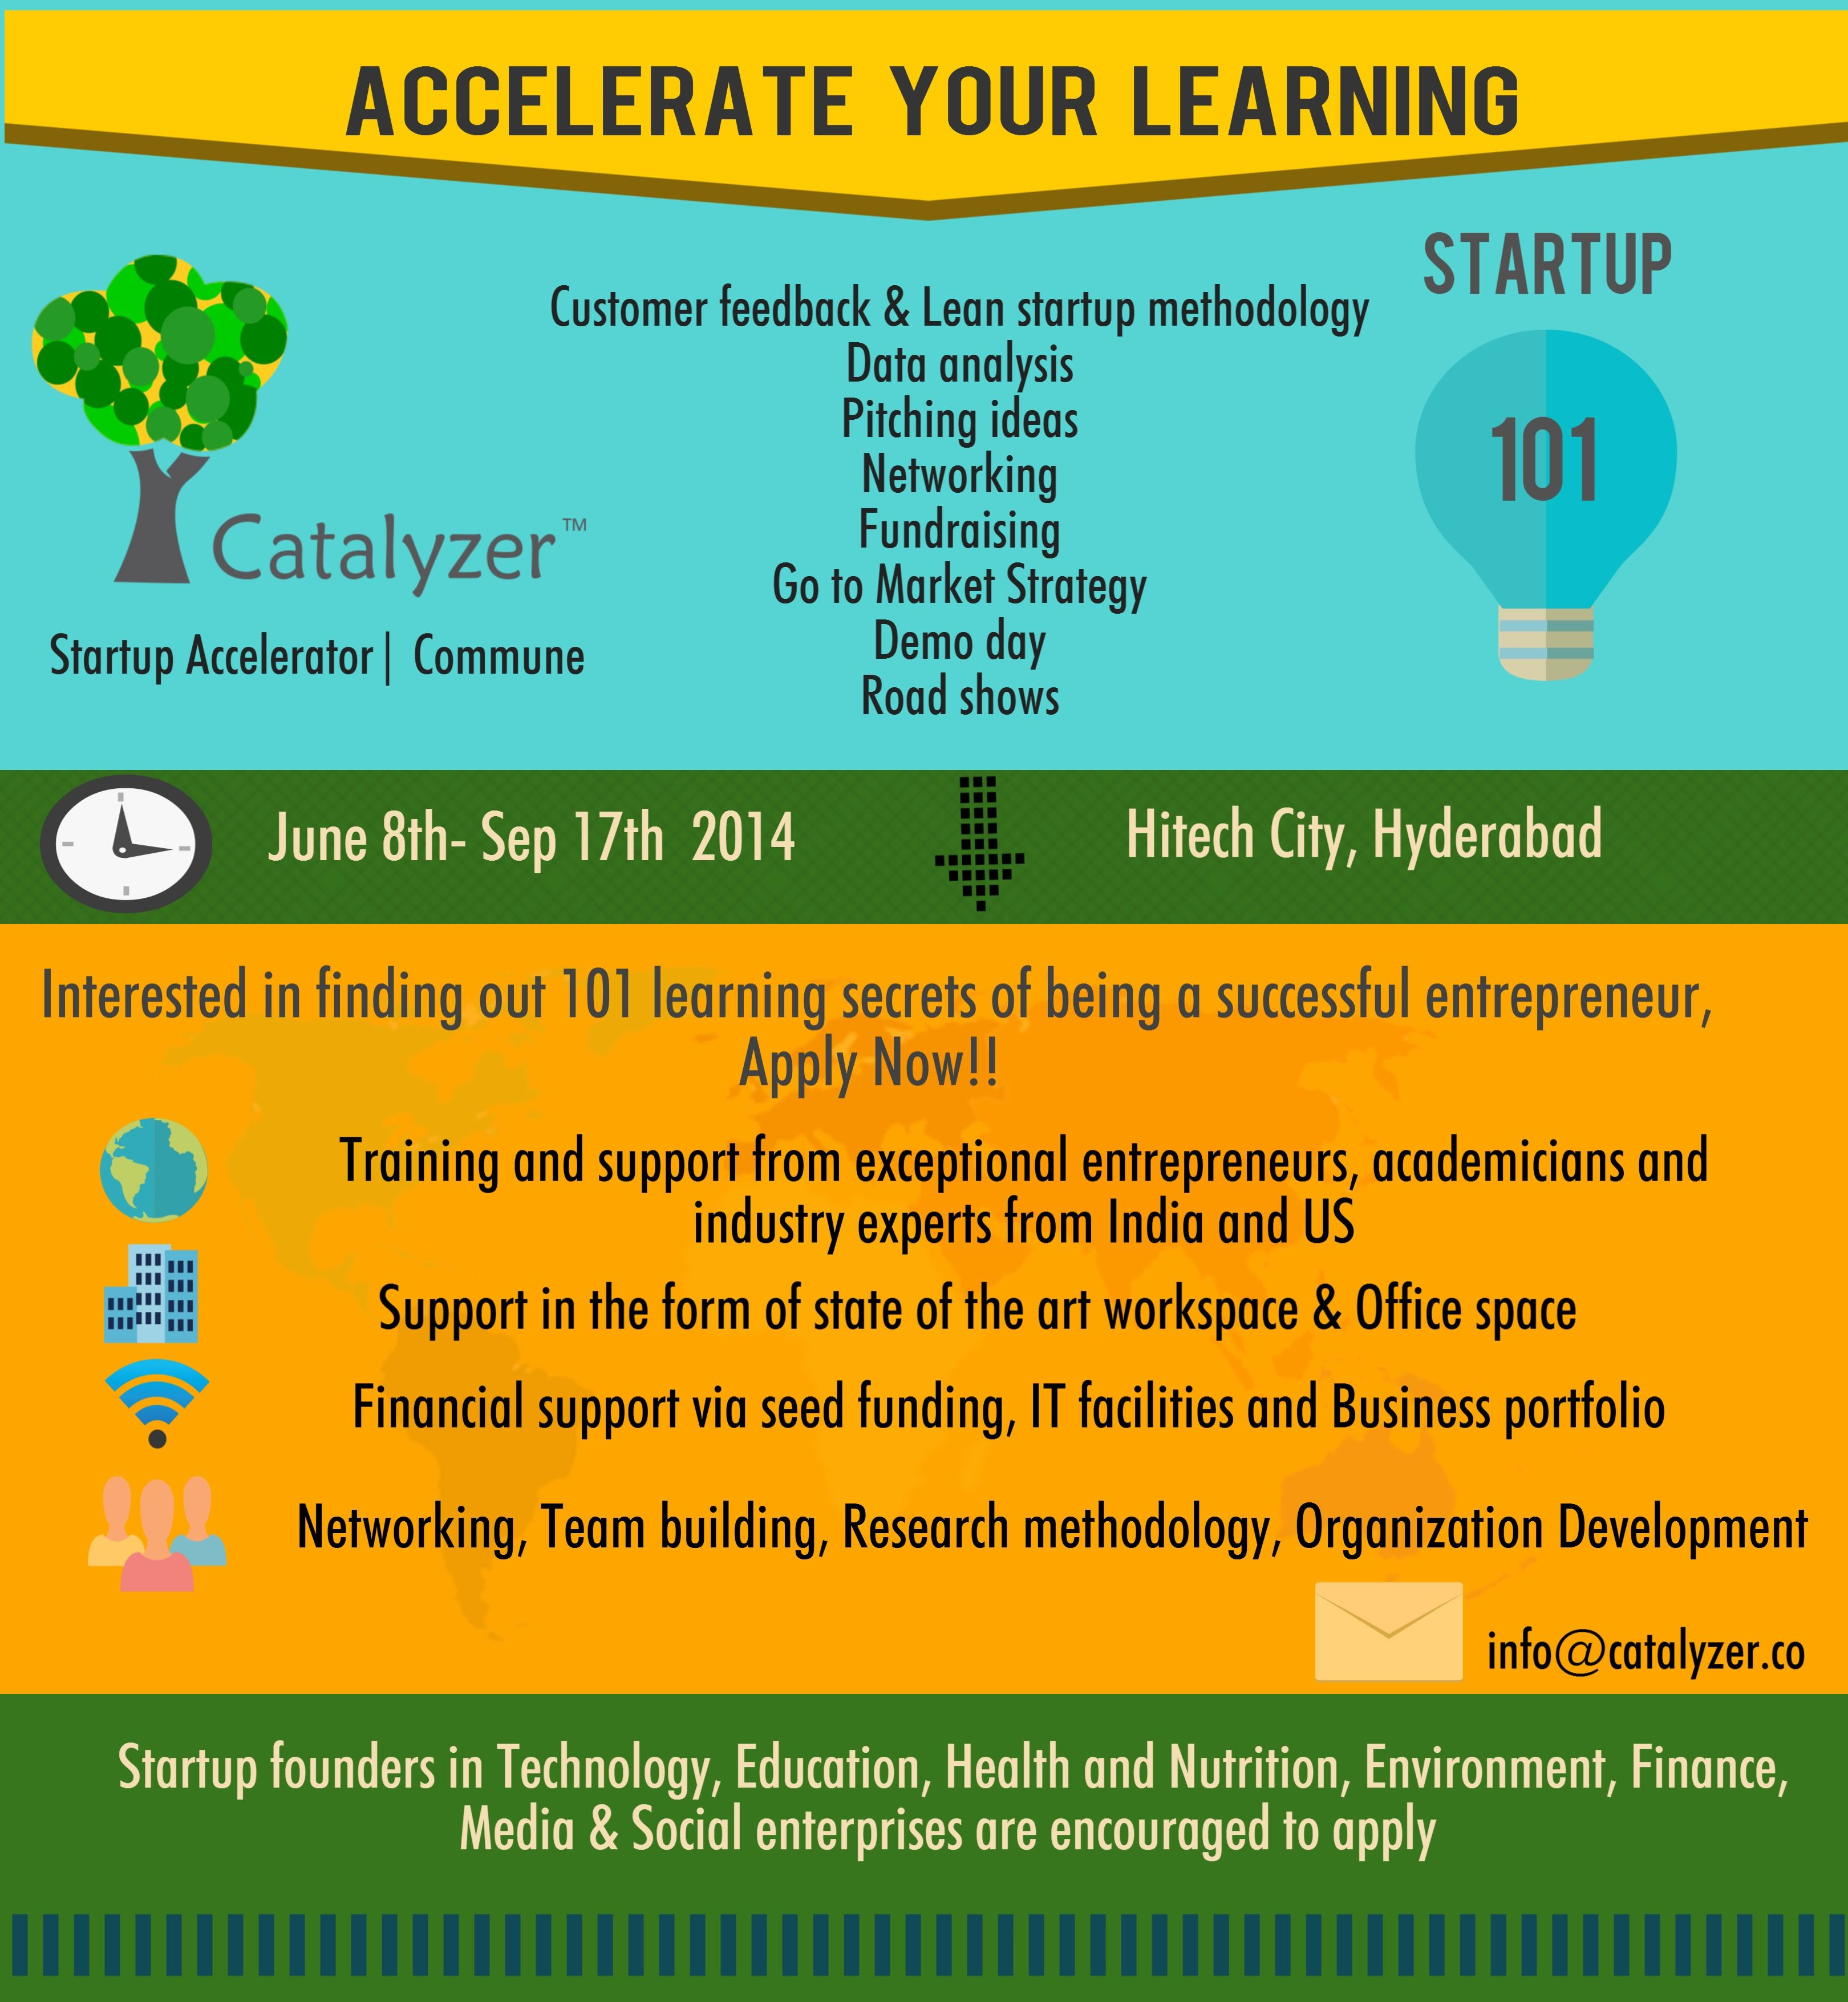 Catalyzer Startup Accelerator announced the launch of the Startup